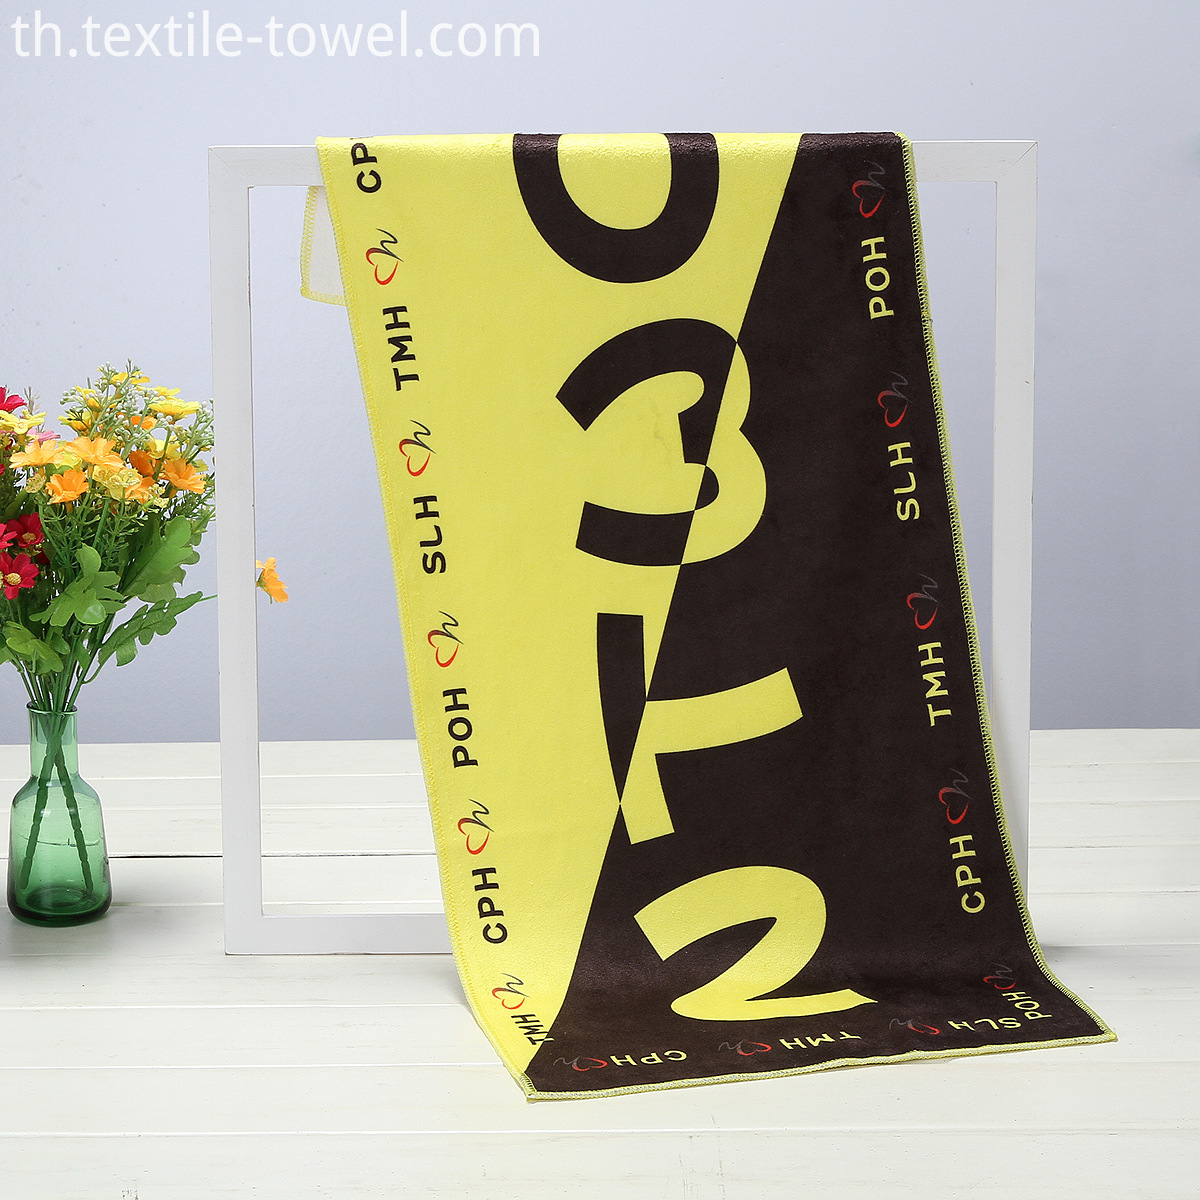 Personalized Printed Team Towels